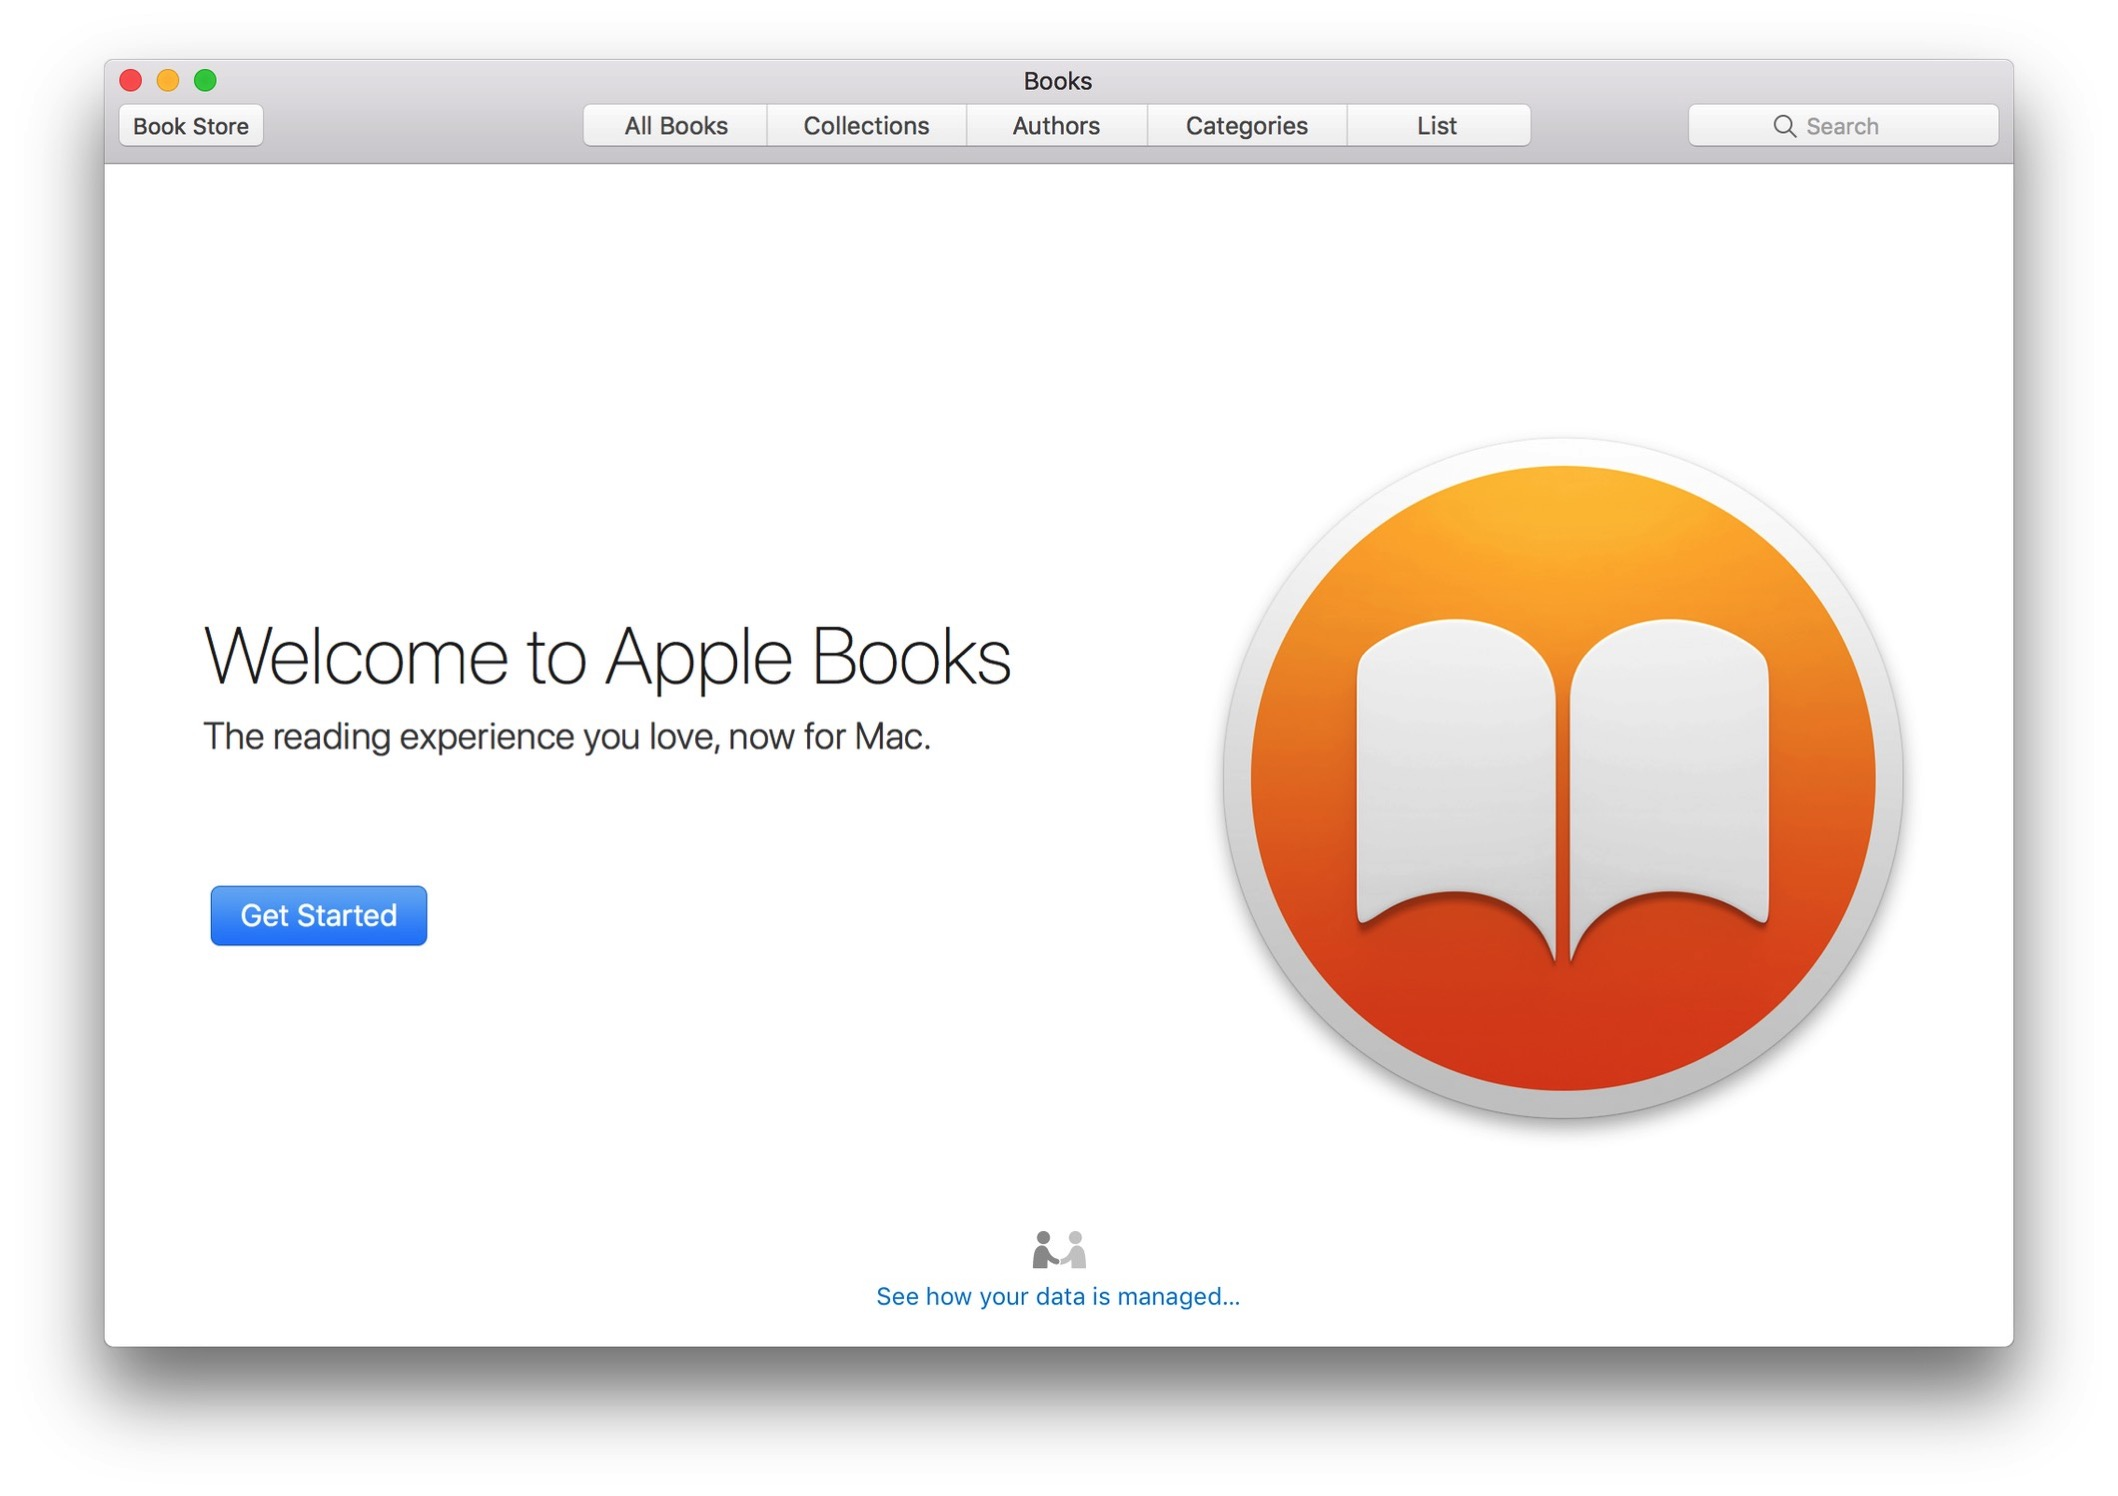 IBooks is now Books in macOS